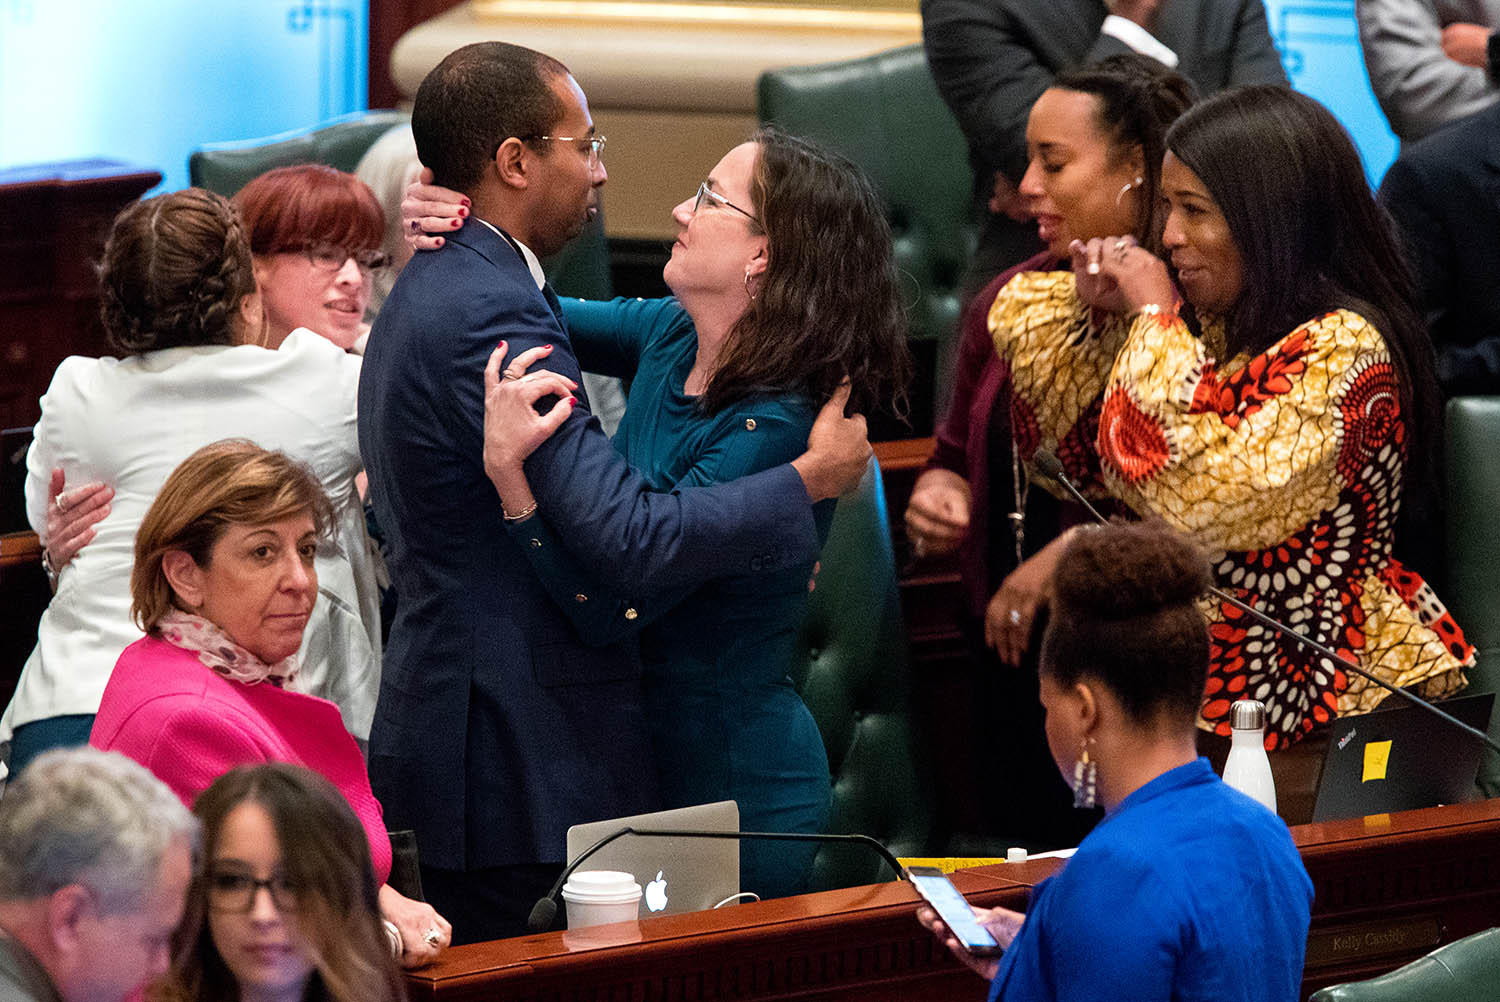 Illinois deputy governor Christian Mitchell and Illinois state Rep. Kelly Cassidy, D-Chicago, embrace as they celebrate the 66-47 vote in the Illinois House for a bill to legalize recreational marijuana use Friday, May 31, 2019. The vote sends the bill to Gov. J.B. Pritzker who indicated he will sign it. [Ted Schurter/The State Journal-Register]